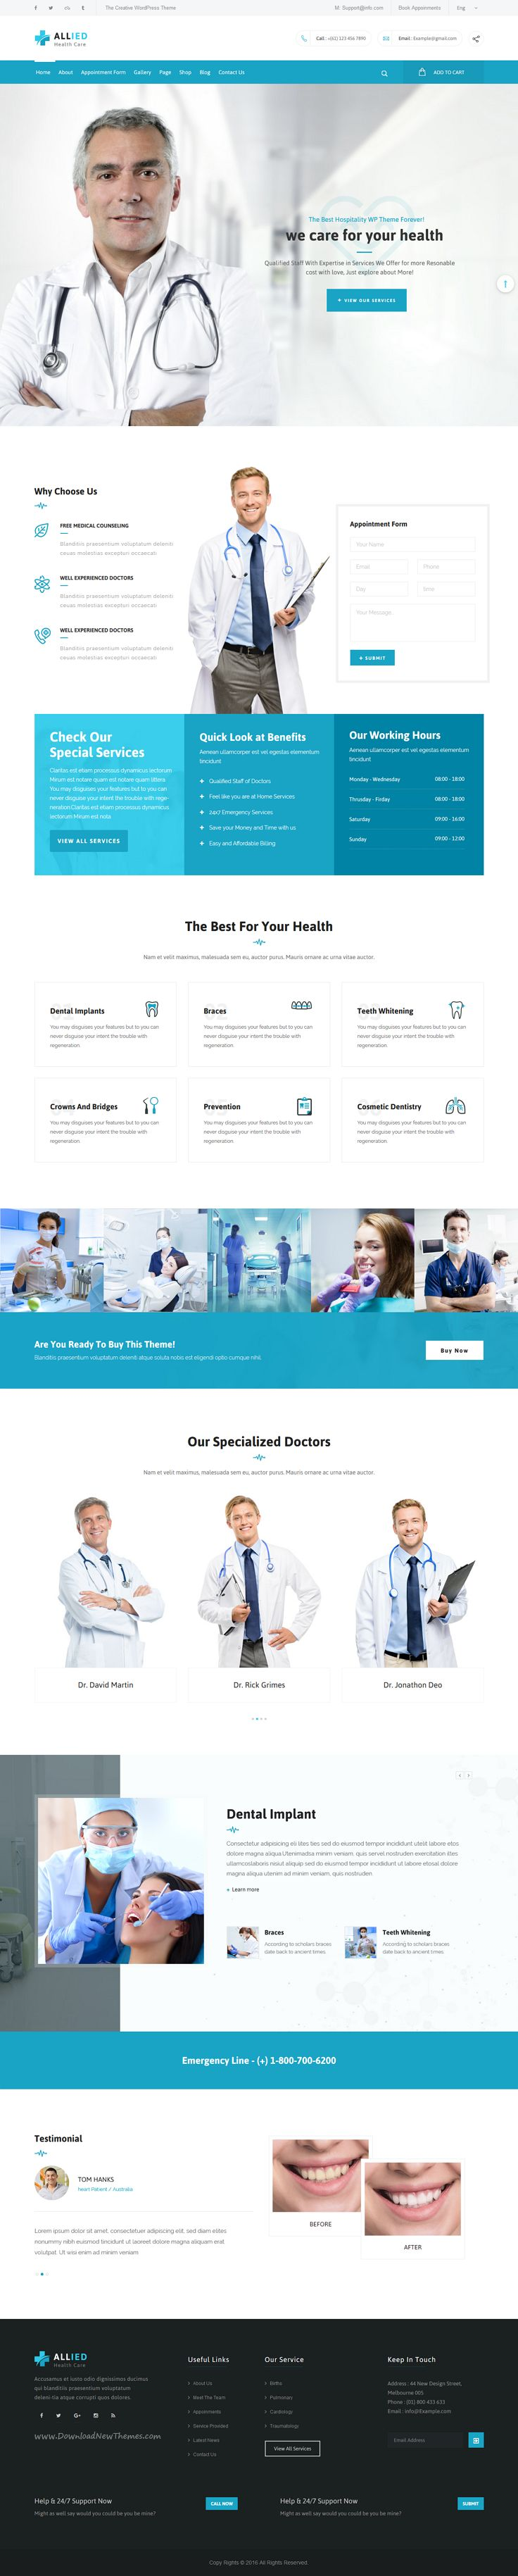 Allied Health Care - Health And Medical HTML Template